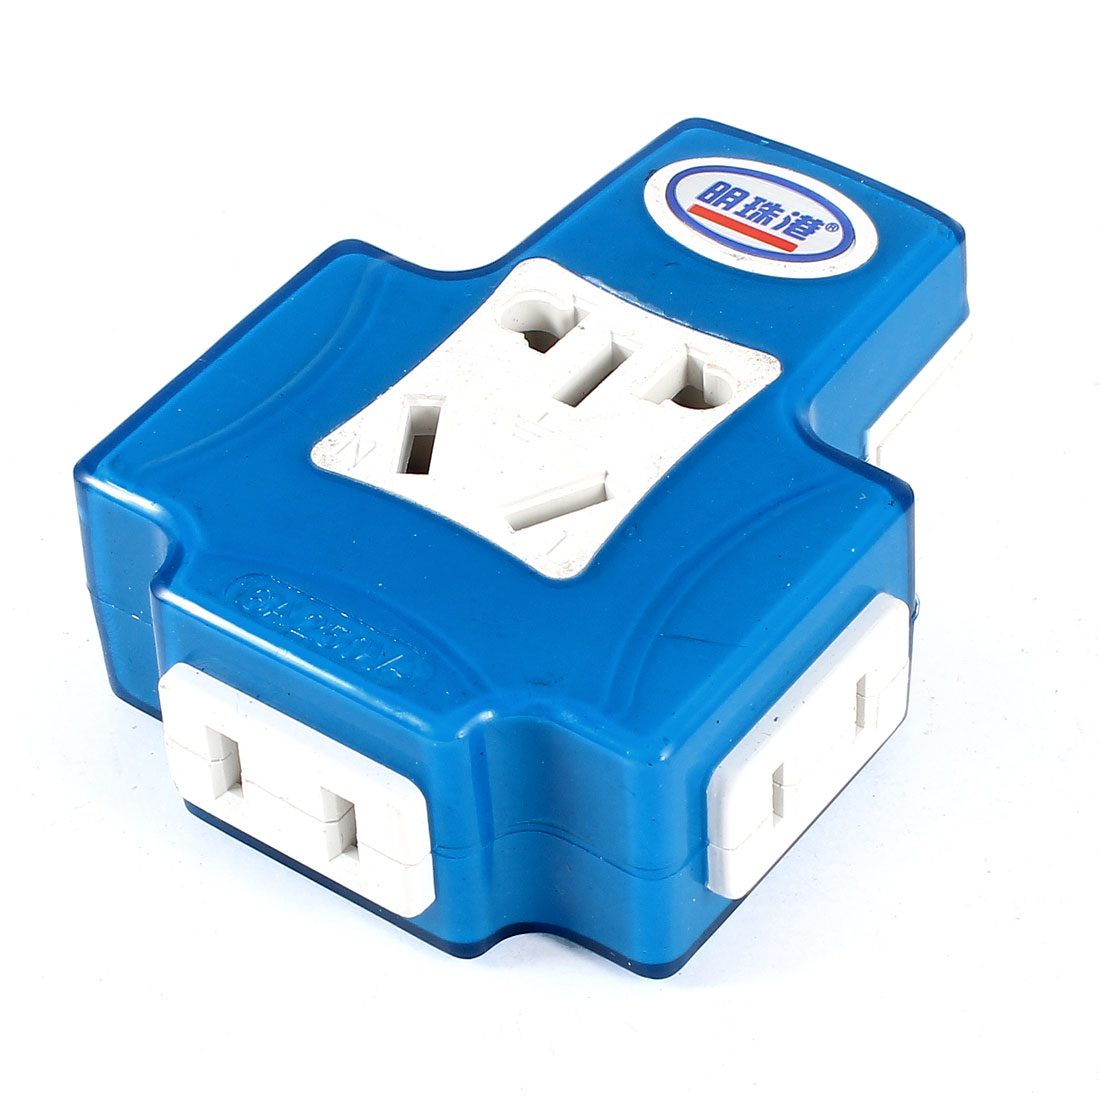 AU US Outlet Socket AC 250V 16A Wall Power Adapter Converter 6500W